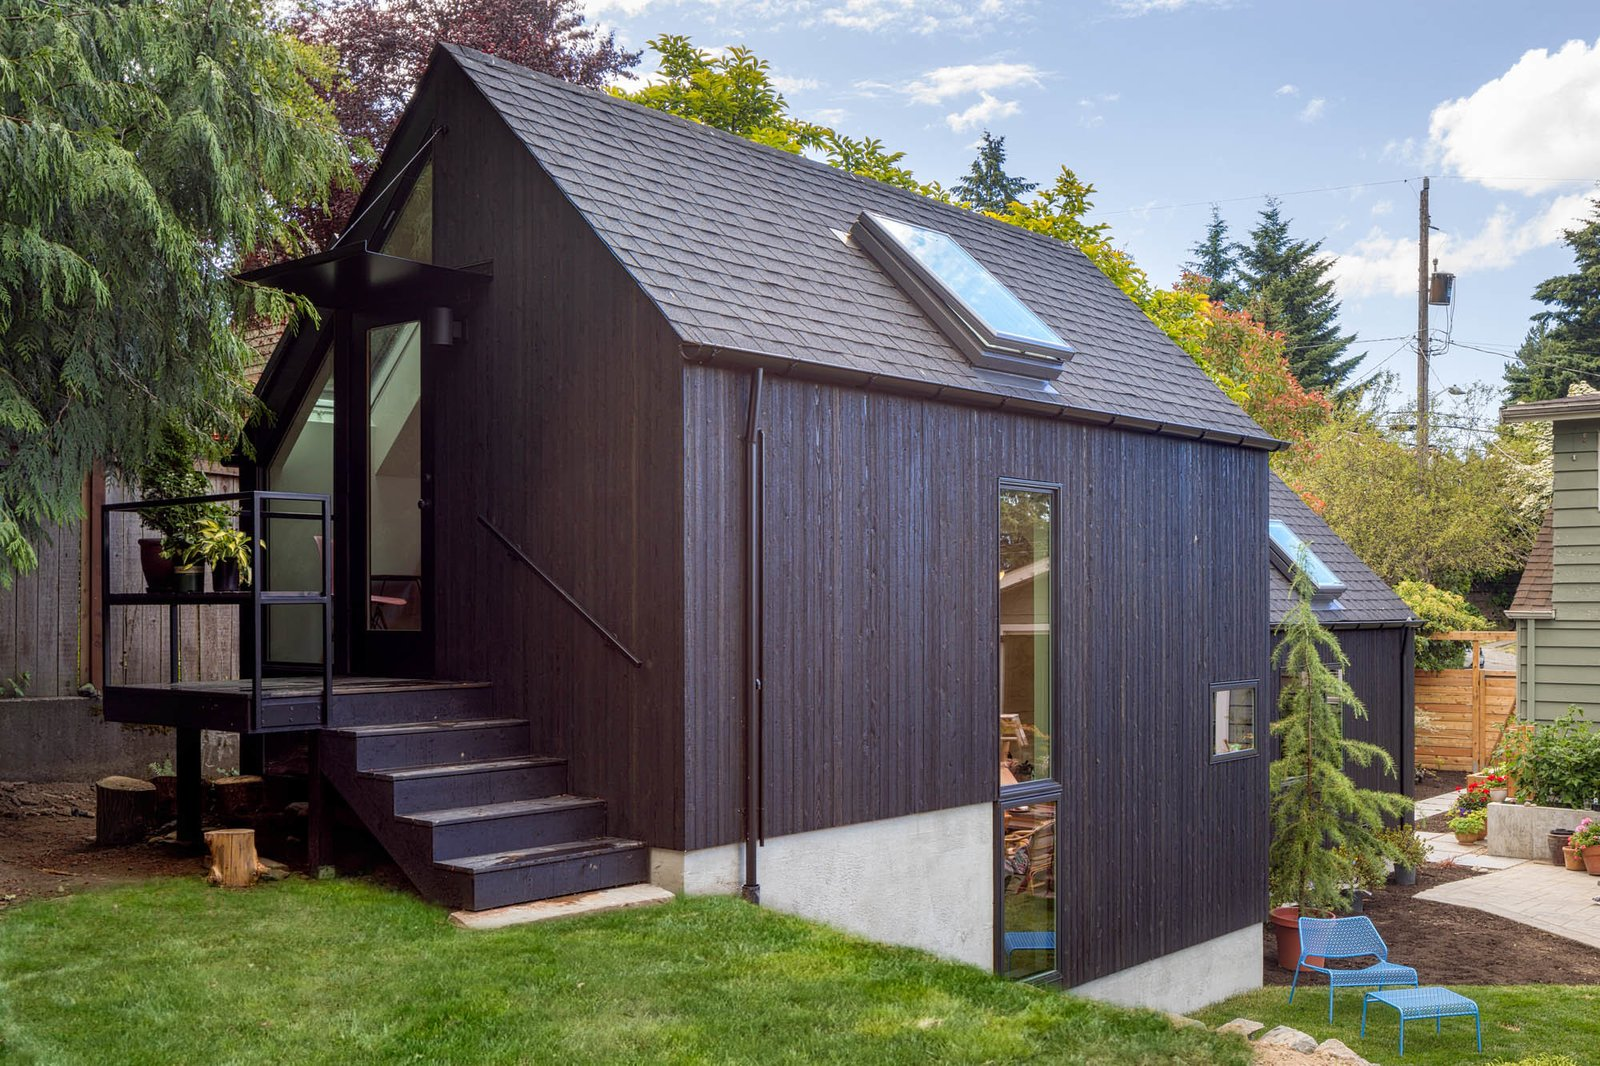 Exterior, House Building Type, Shingles Roof Material, and Wood Siding Material Exterior from the backyard  Granny Pad